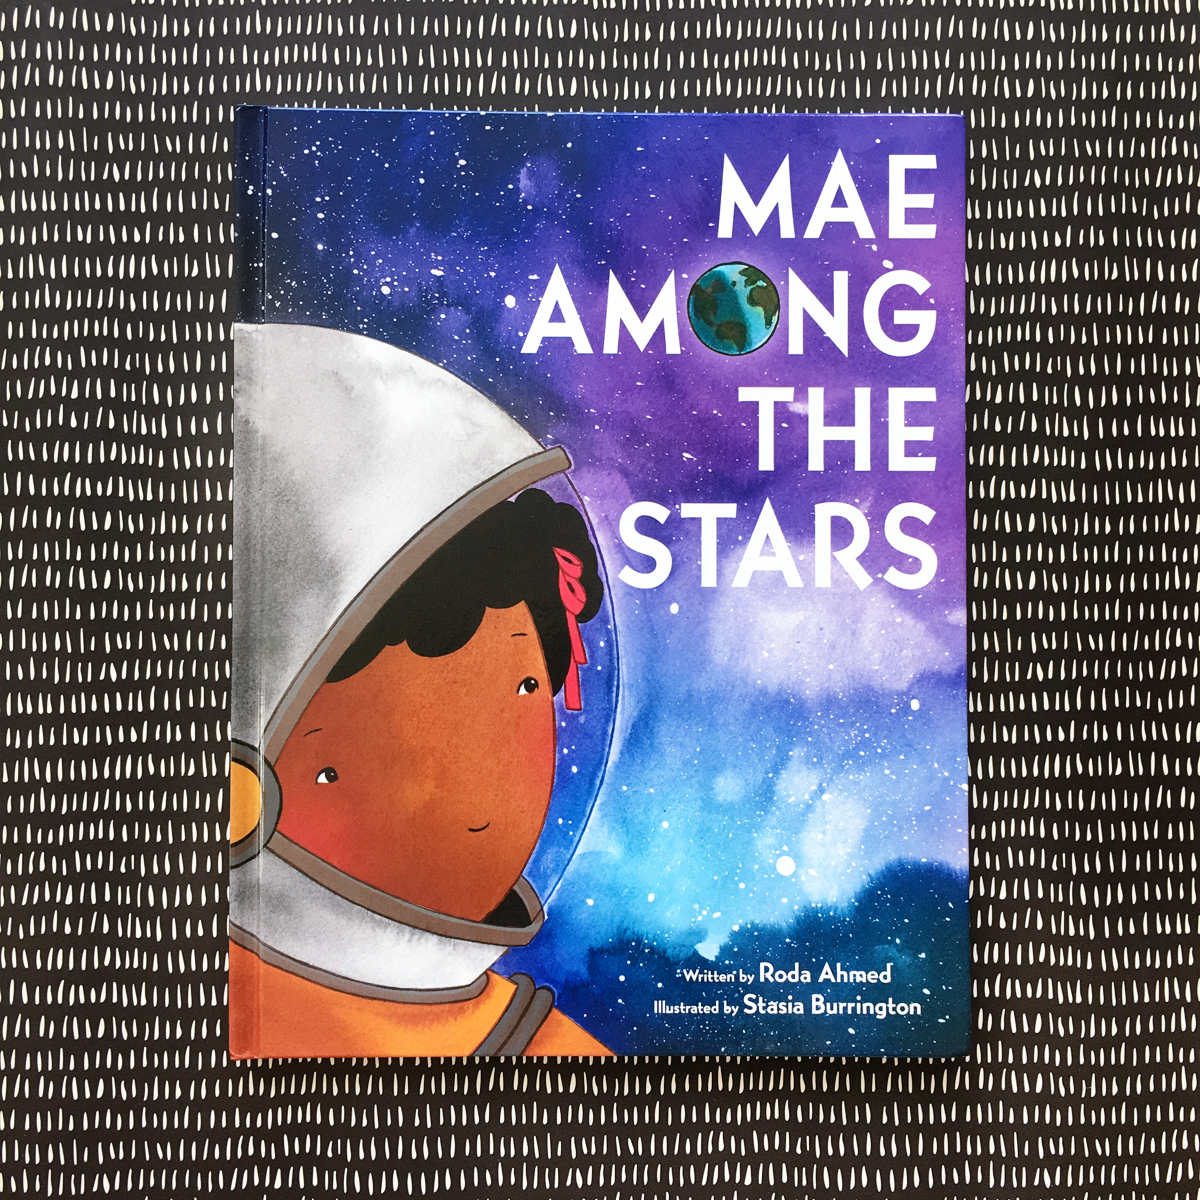 Mae Among the Stars   Books For Diversity